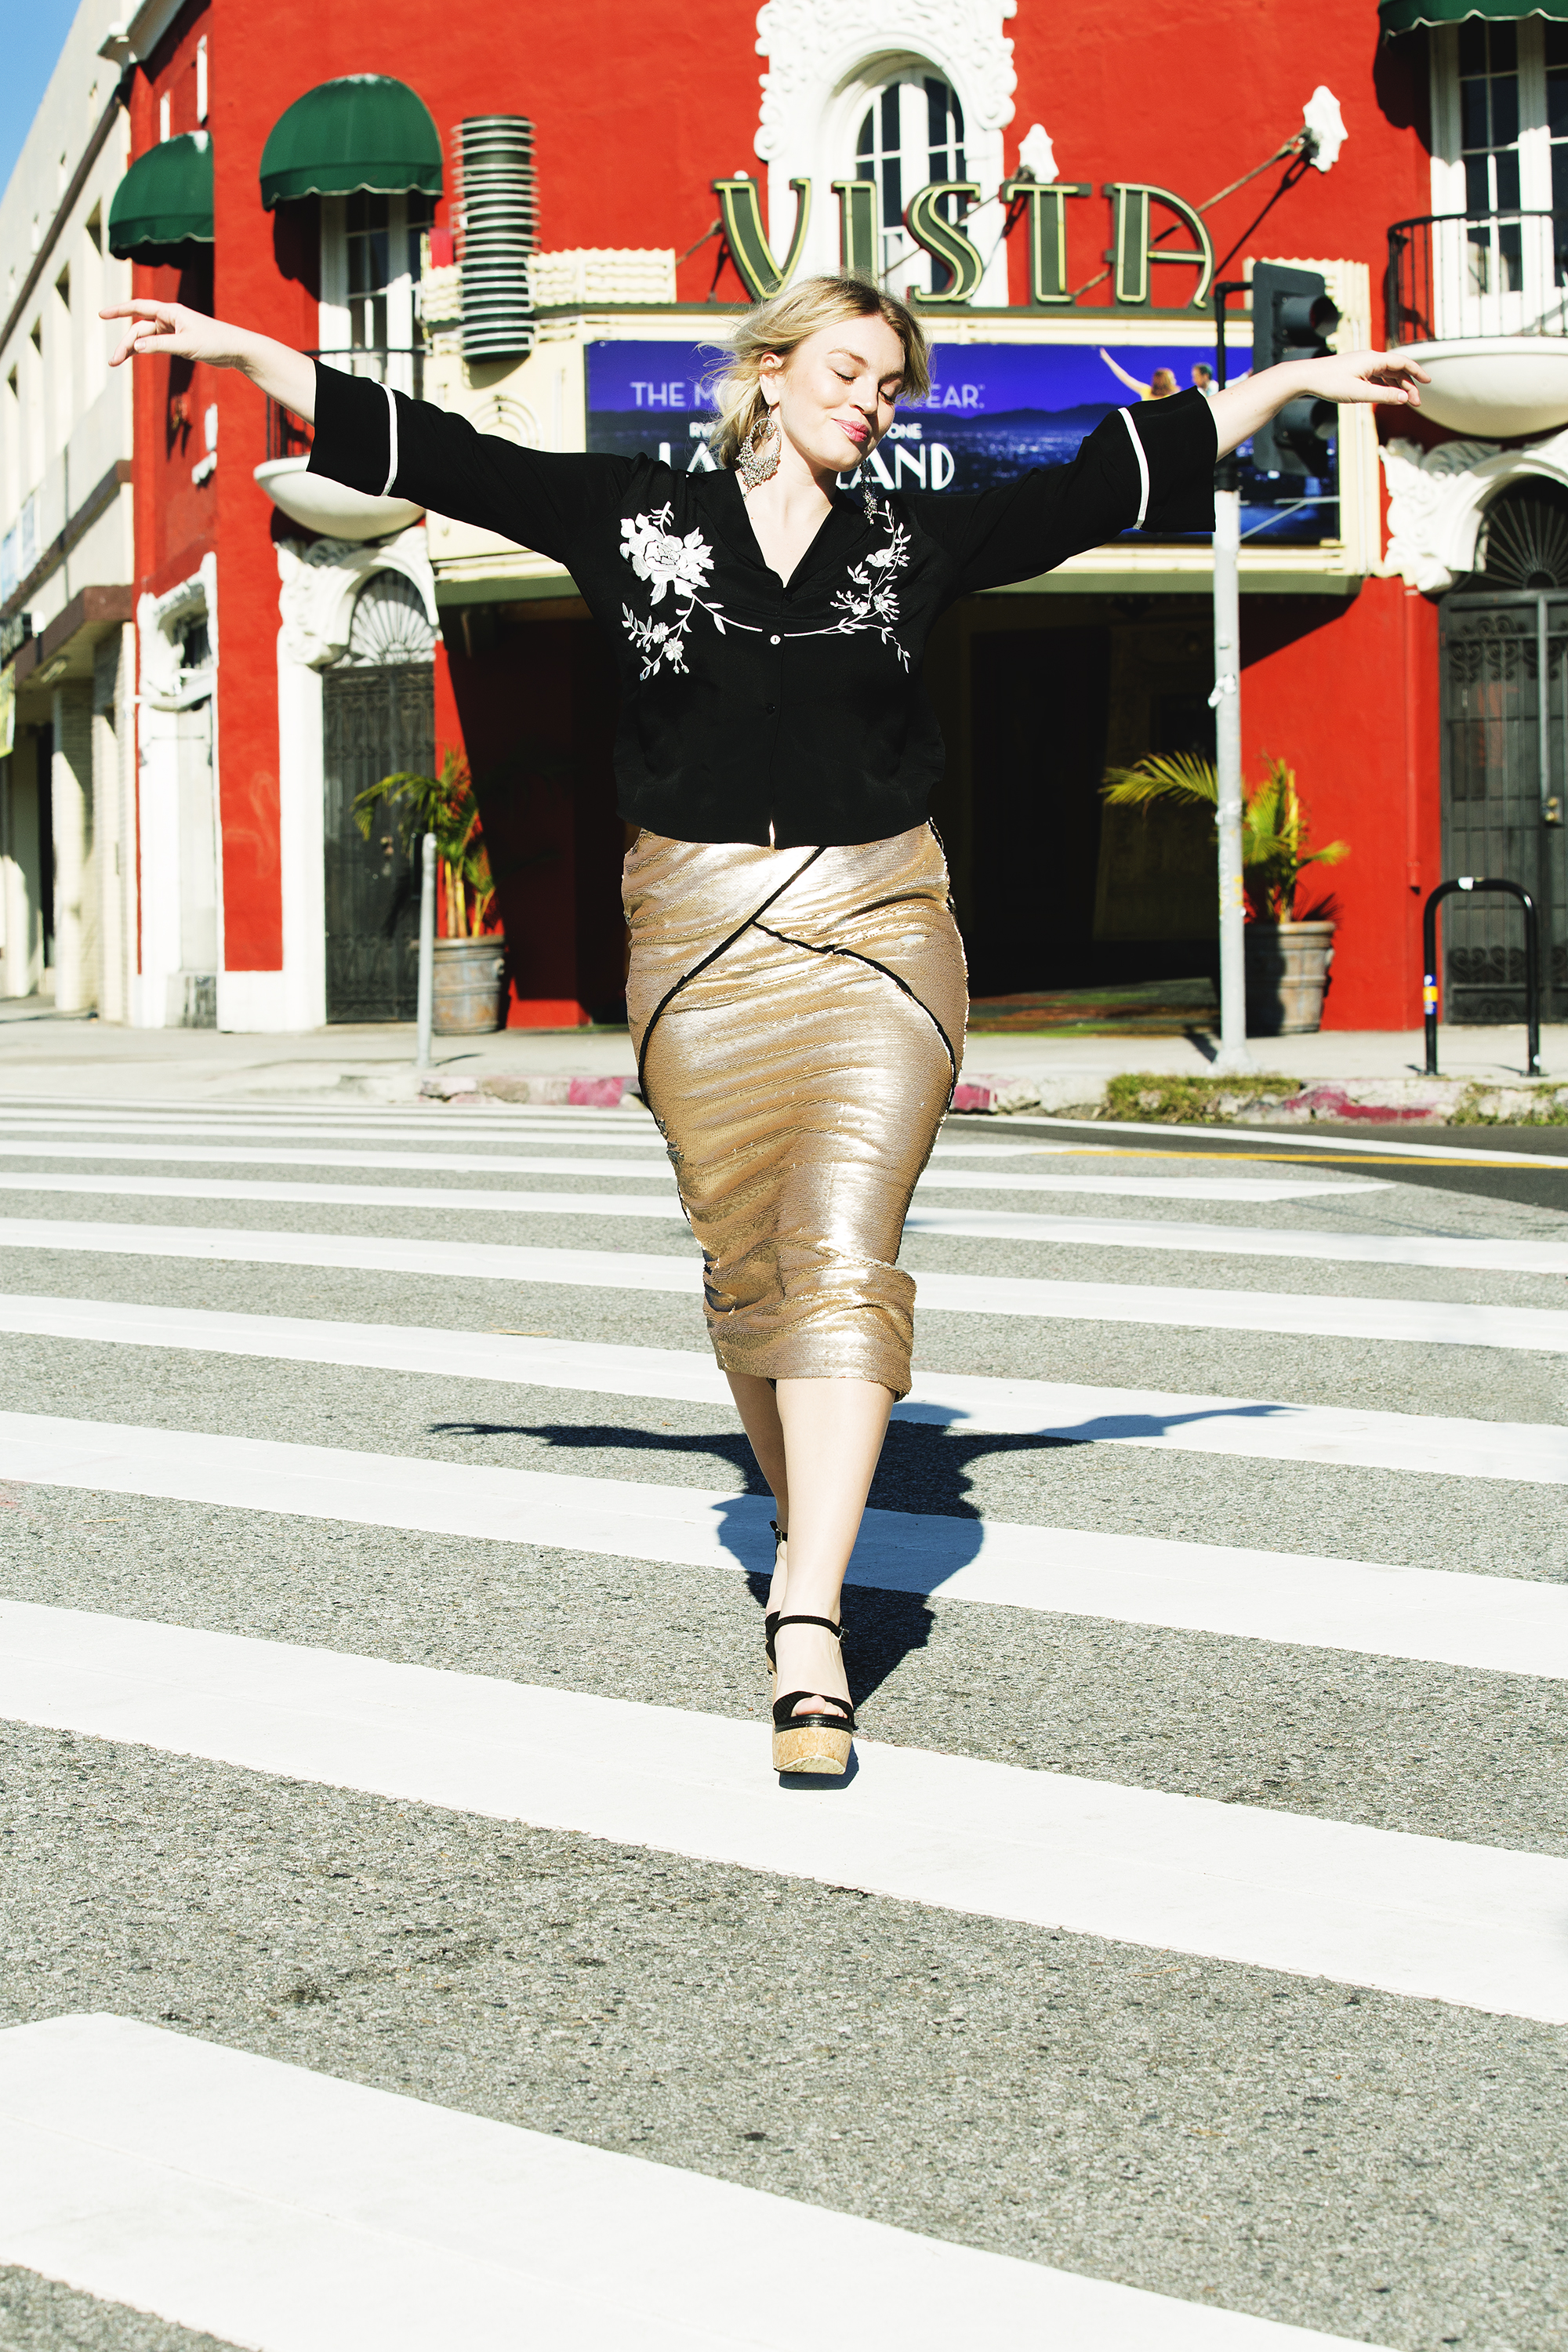 A woman prancing down a city street with her arms outstretched